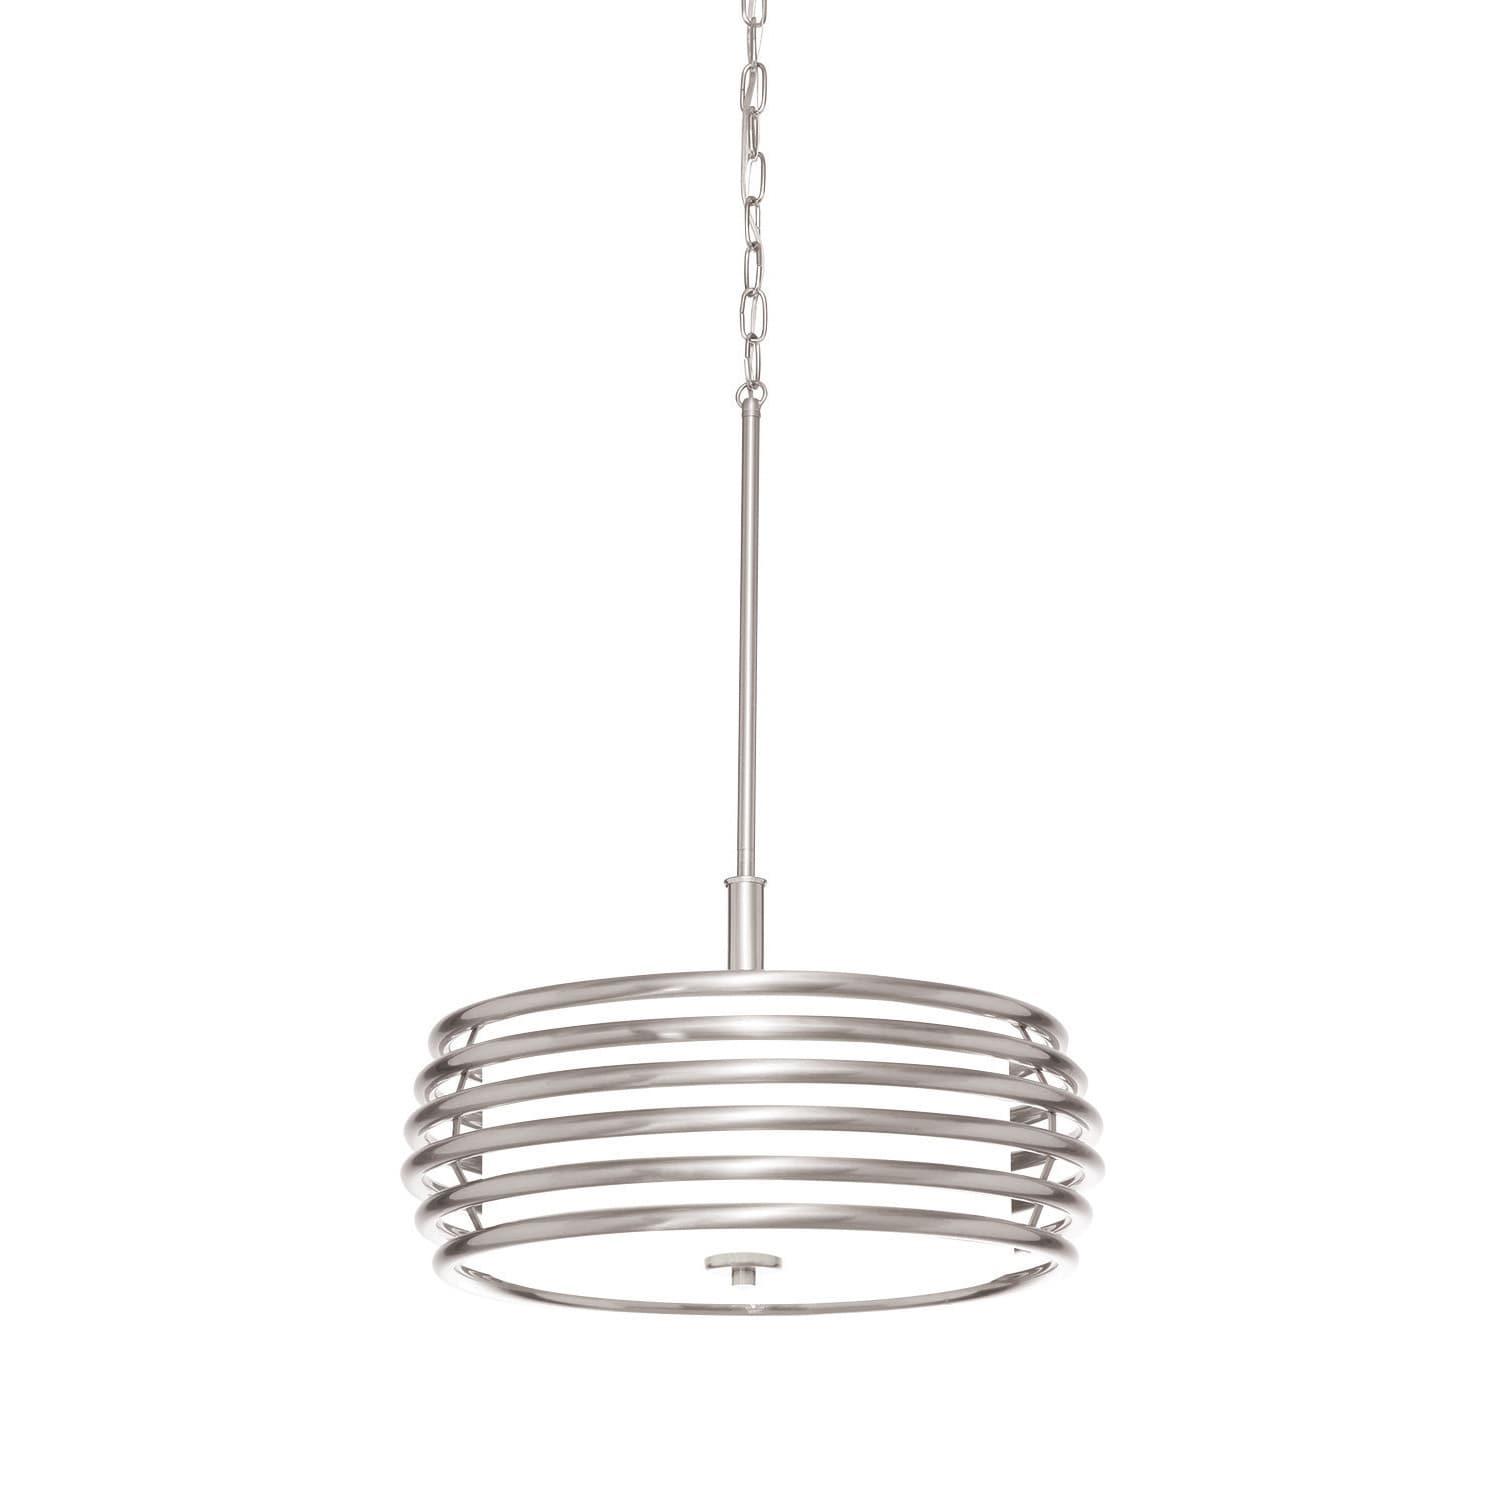 Nickel Finish Ceiling Lights At Com Our Best Lighting Deals